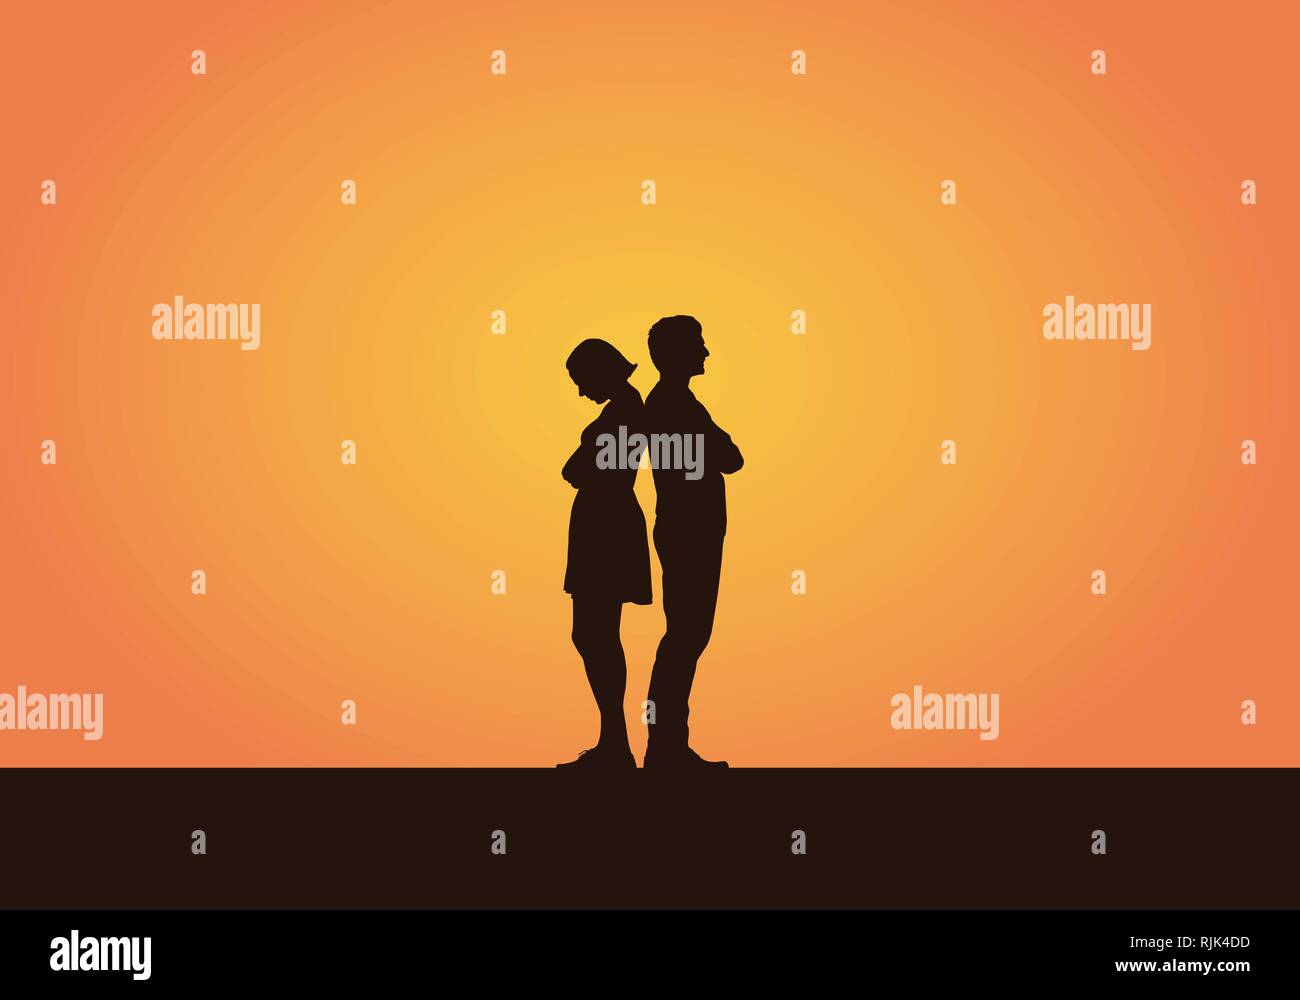 Realistic illustration of a silhouette of a couple of young people, men and women after a quarrel or disagreement. Isolated on an orange background -  - Stock Image